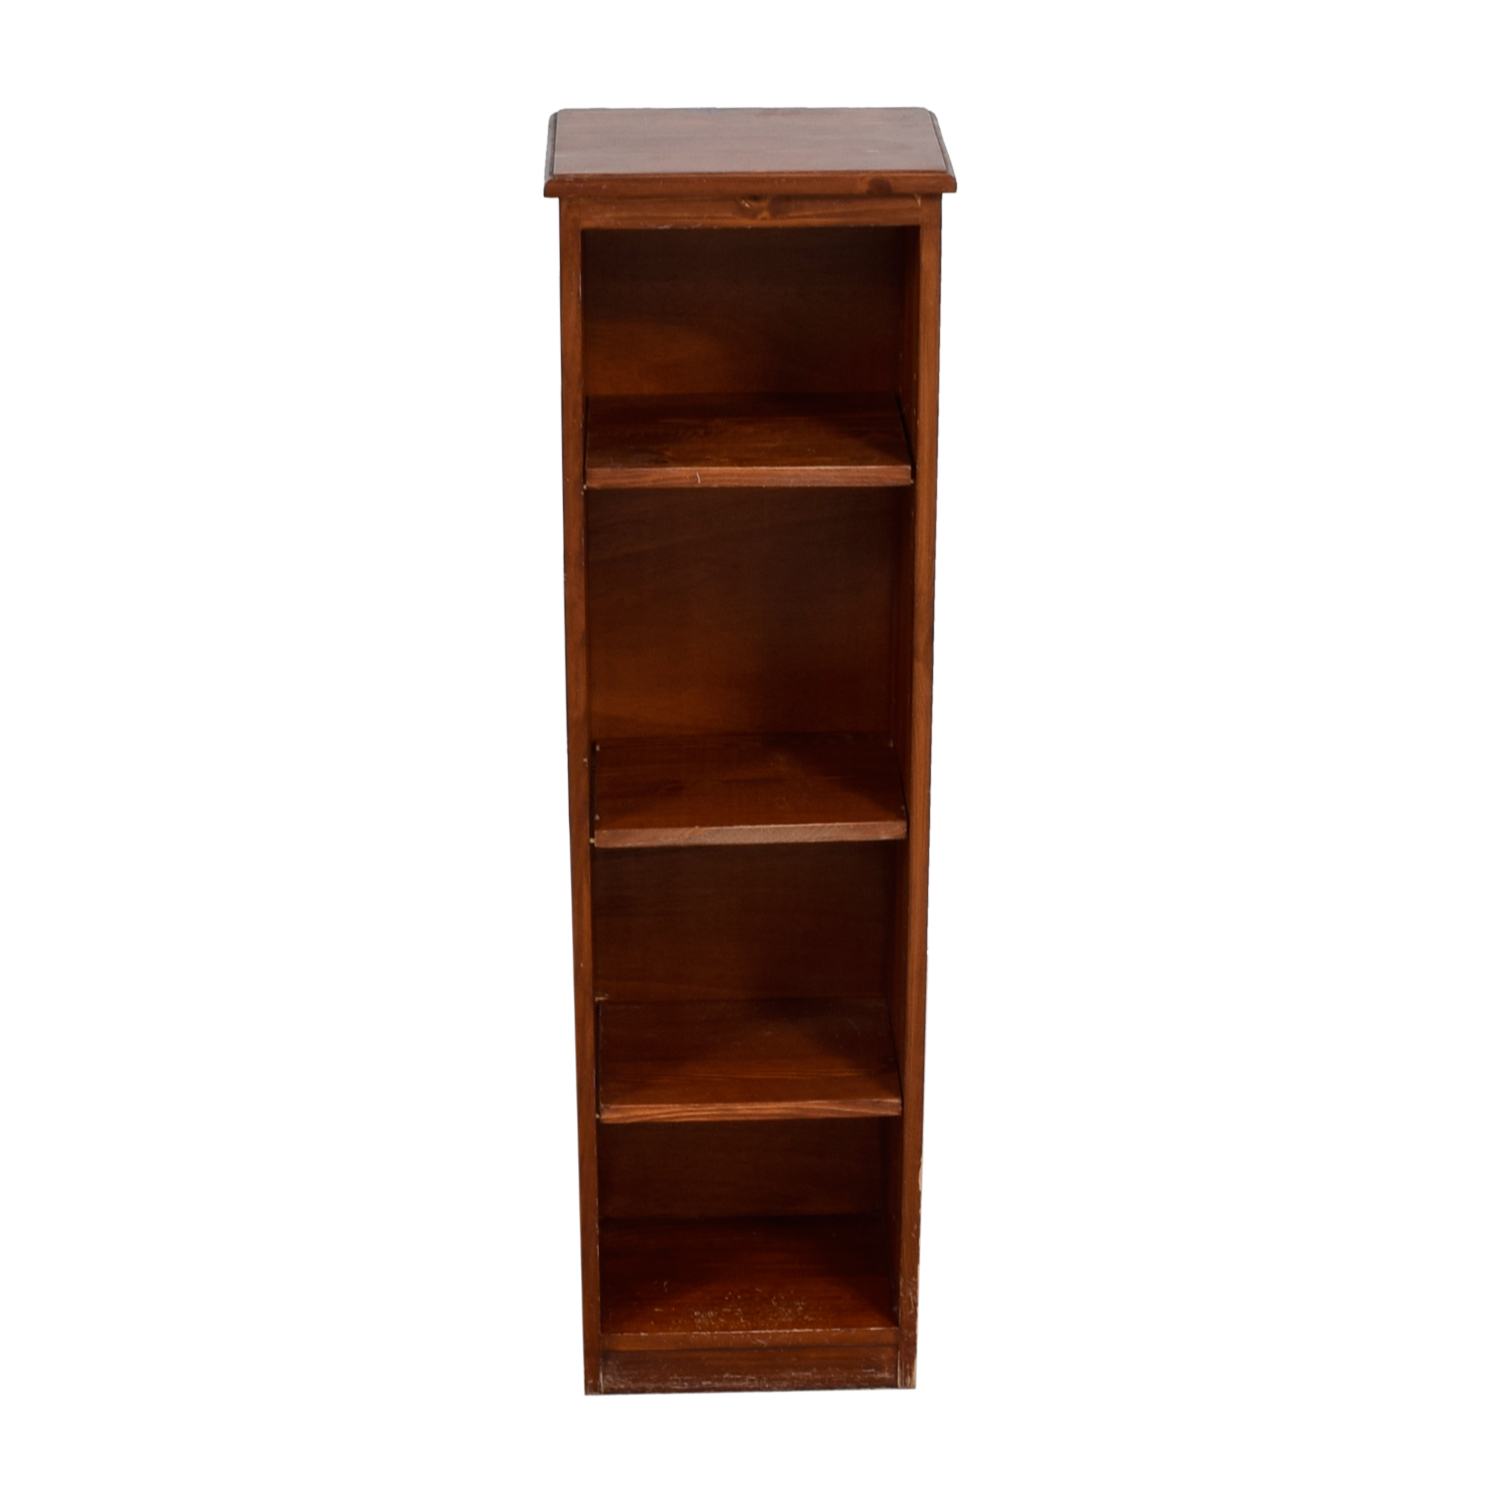 Gotham Cabinet Craft Gotham Cabinet Craft Narrow Wood Bookshelf nyc